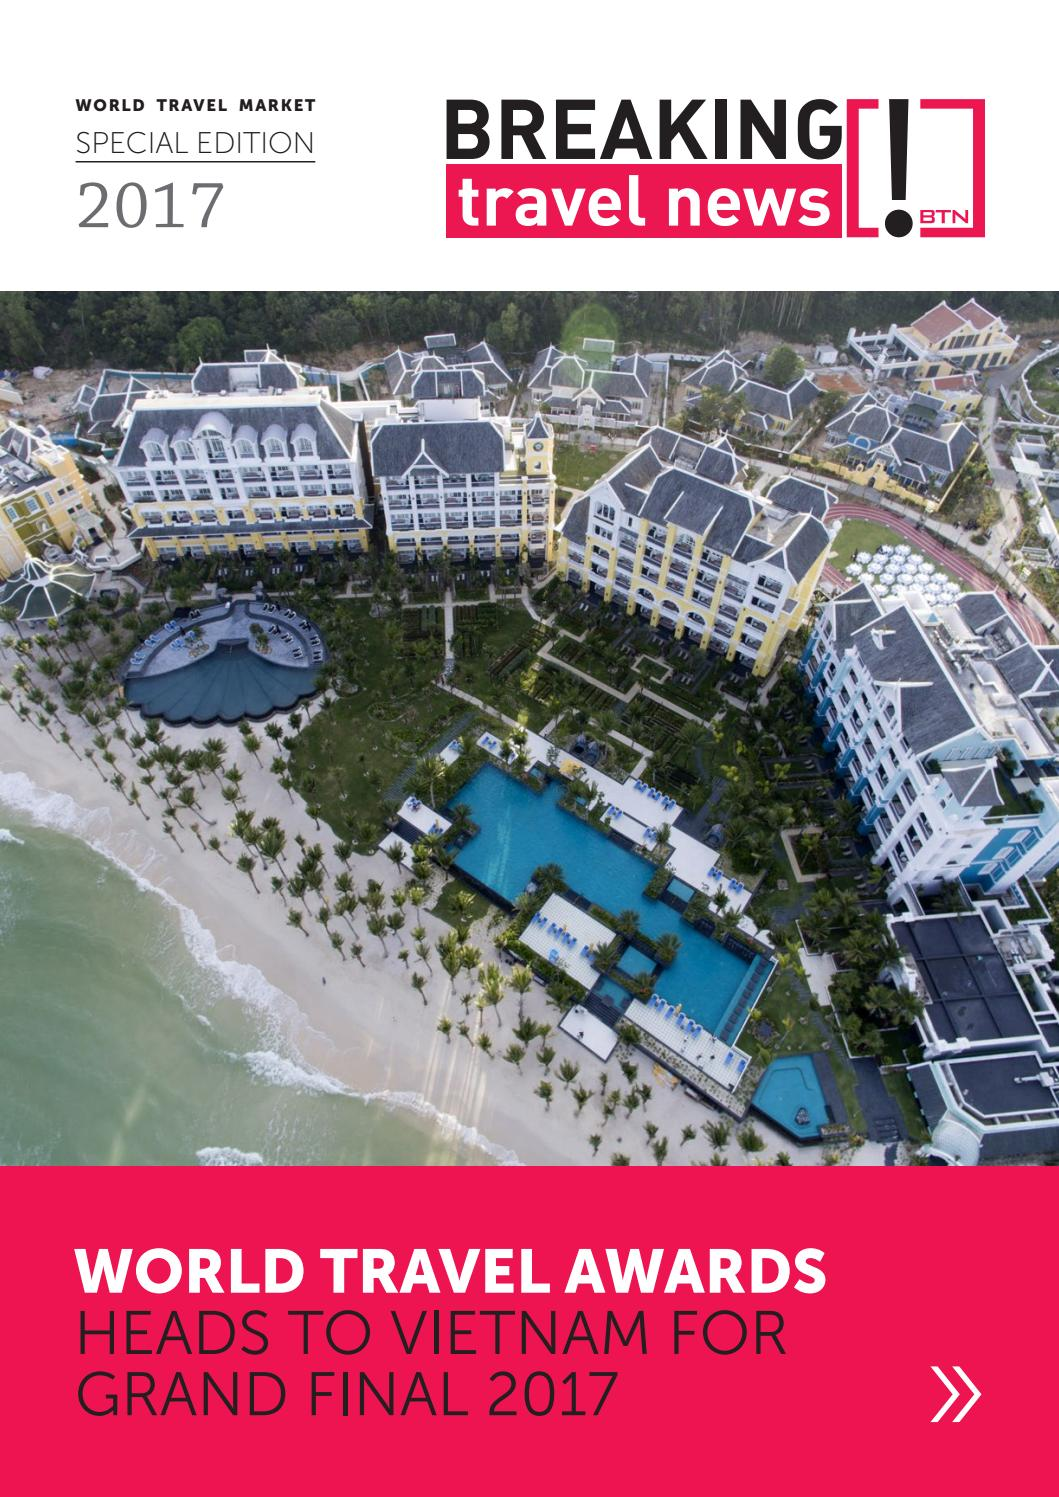 Publications: Breaking Travel News Special Edition - World Travel Market 2017